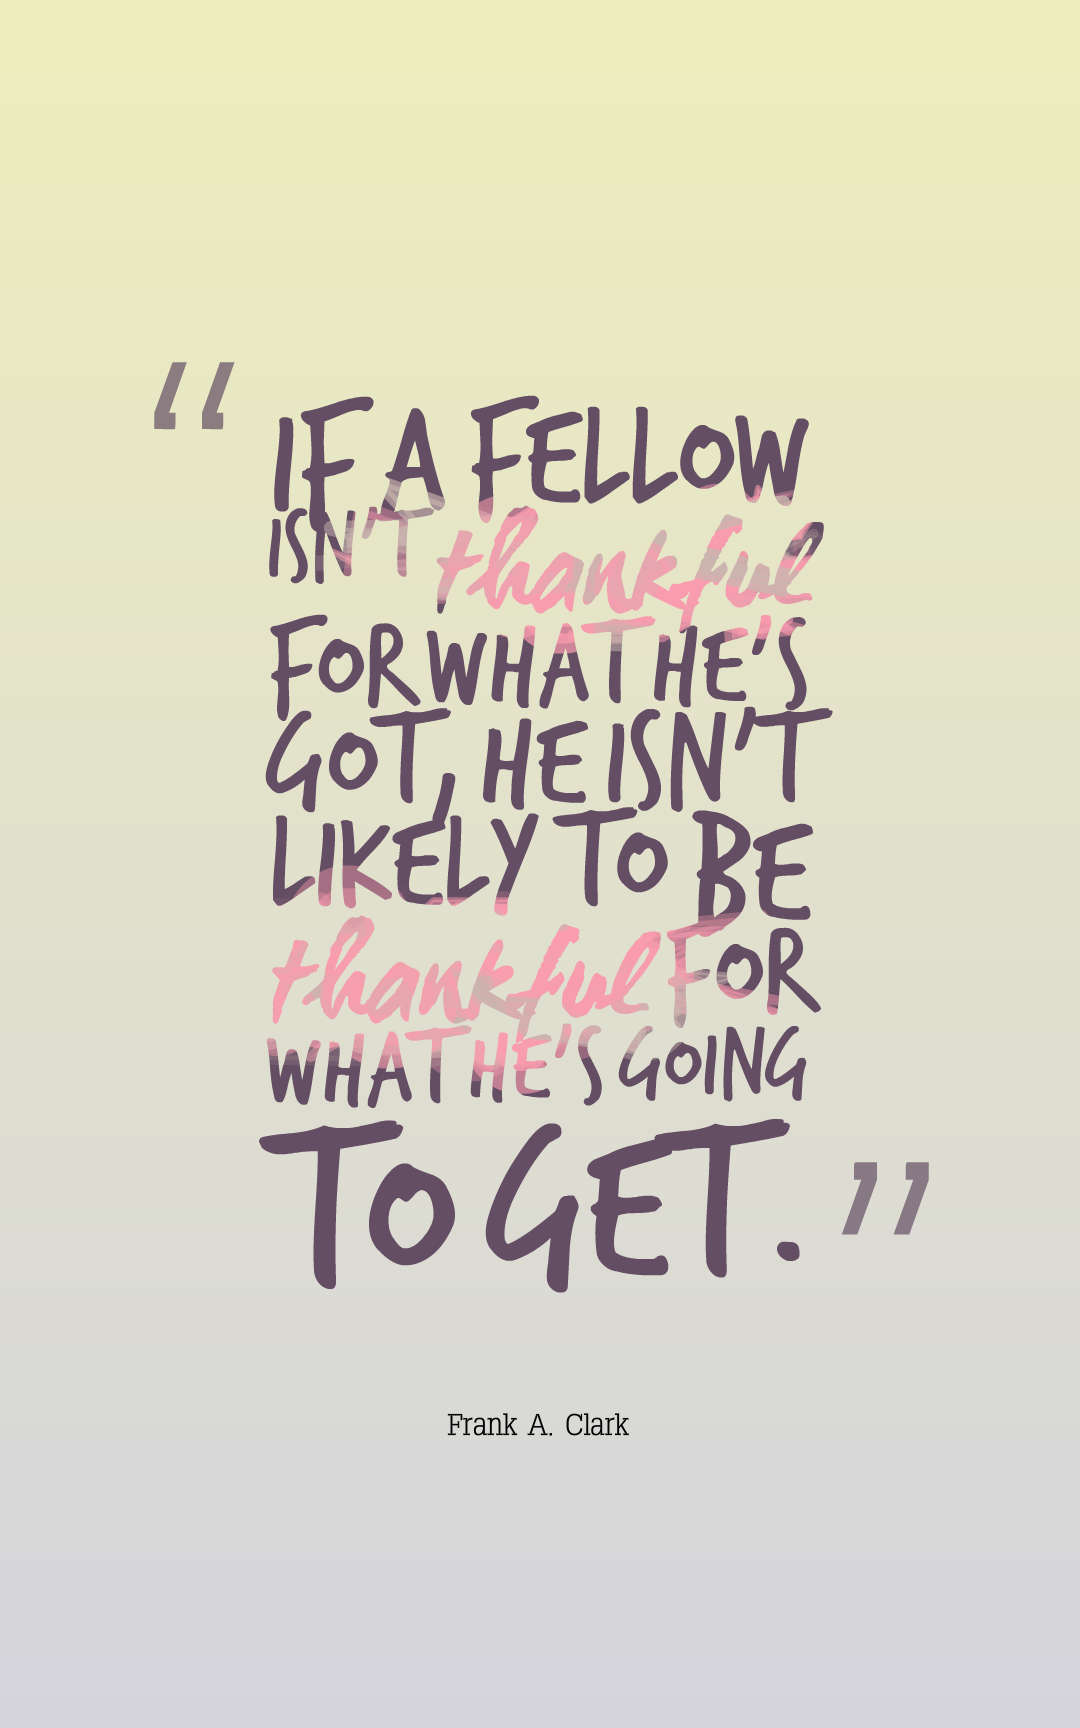 Quotes image of If a fellow isn't thankful for what he's got, he isn't likely to be thankful for what he's going to get.